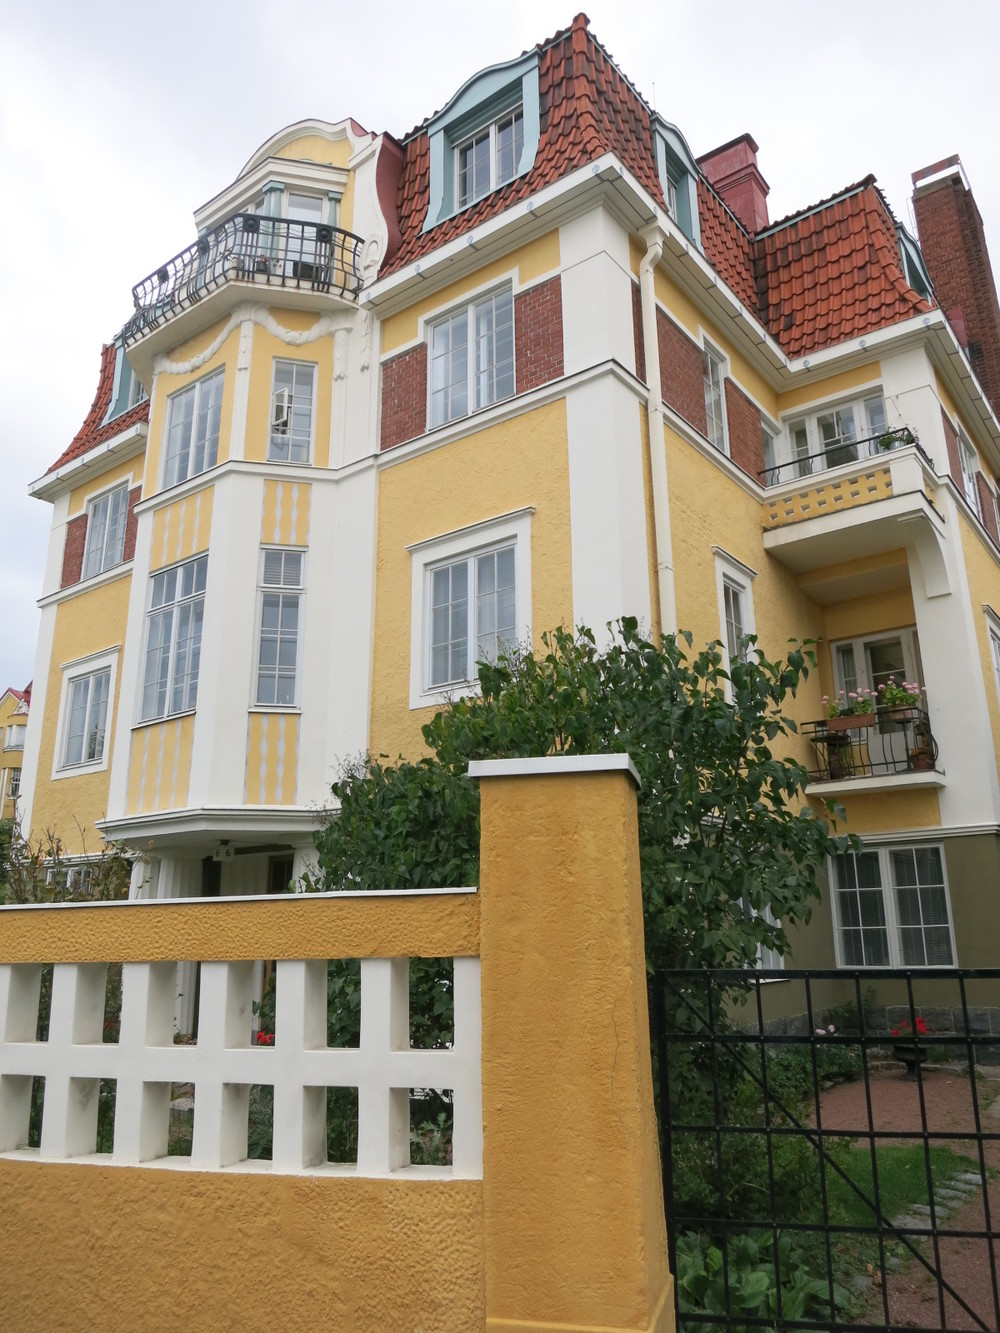 Art Nouveau homes in the Eira neighbourhood of Helsinki